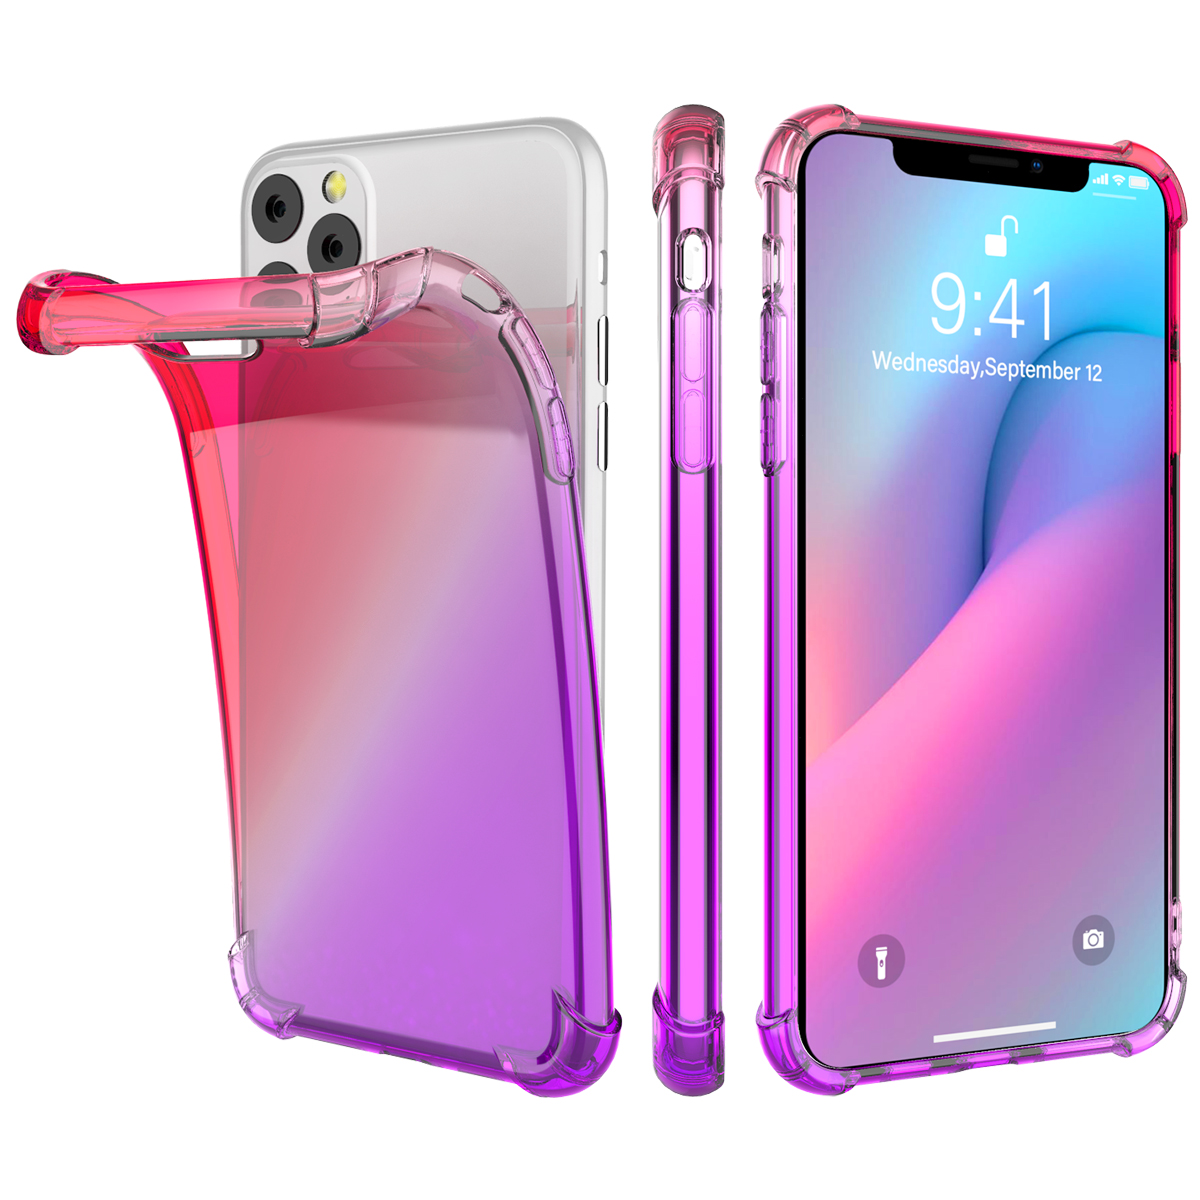 Gradient Soft TPU Case for iPhone 11/11 Pro/11 Pro Max 13